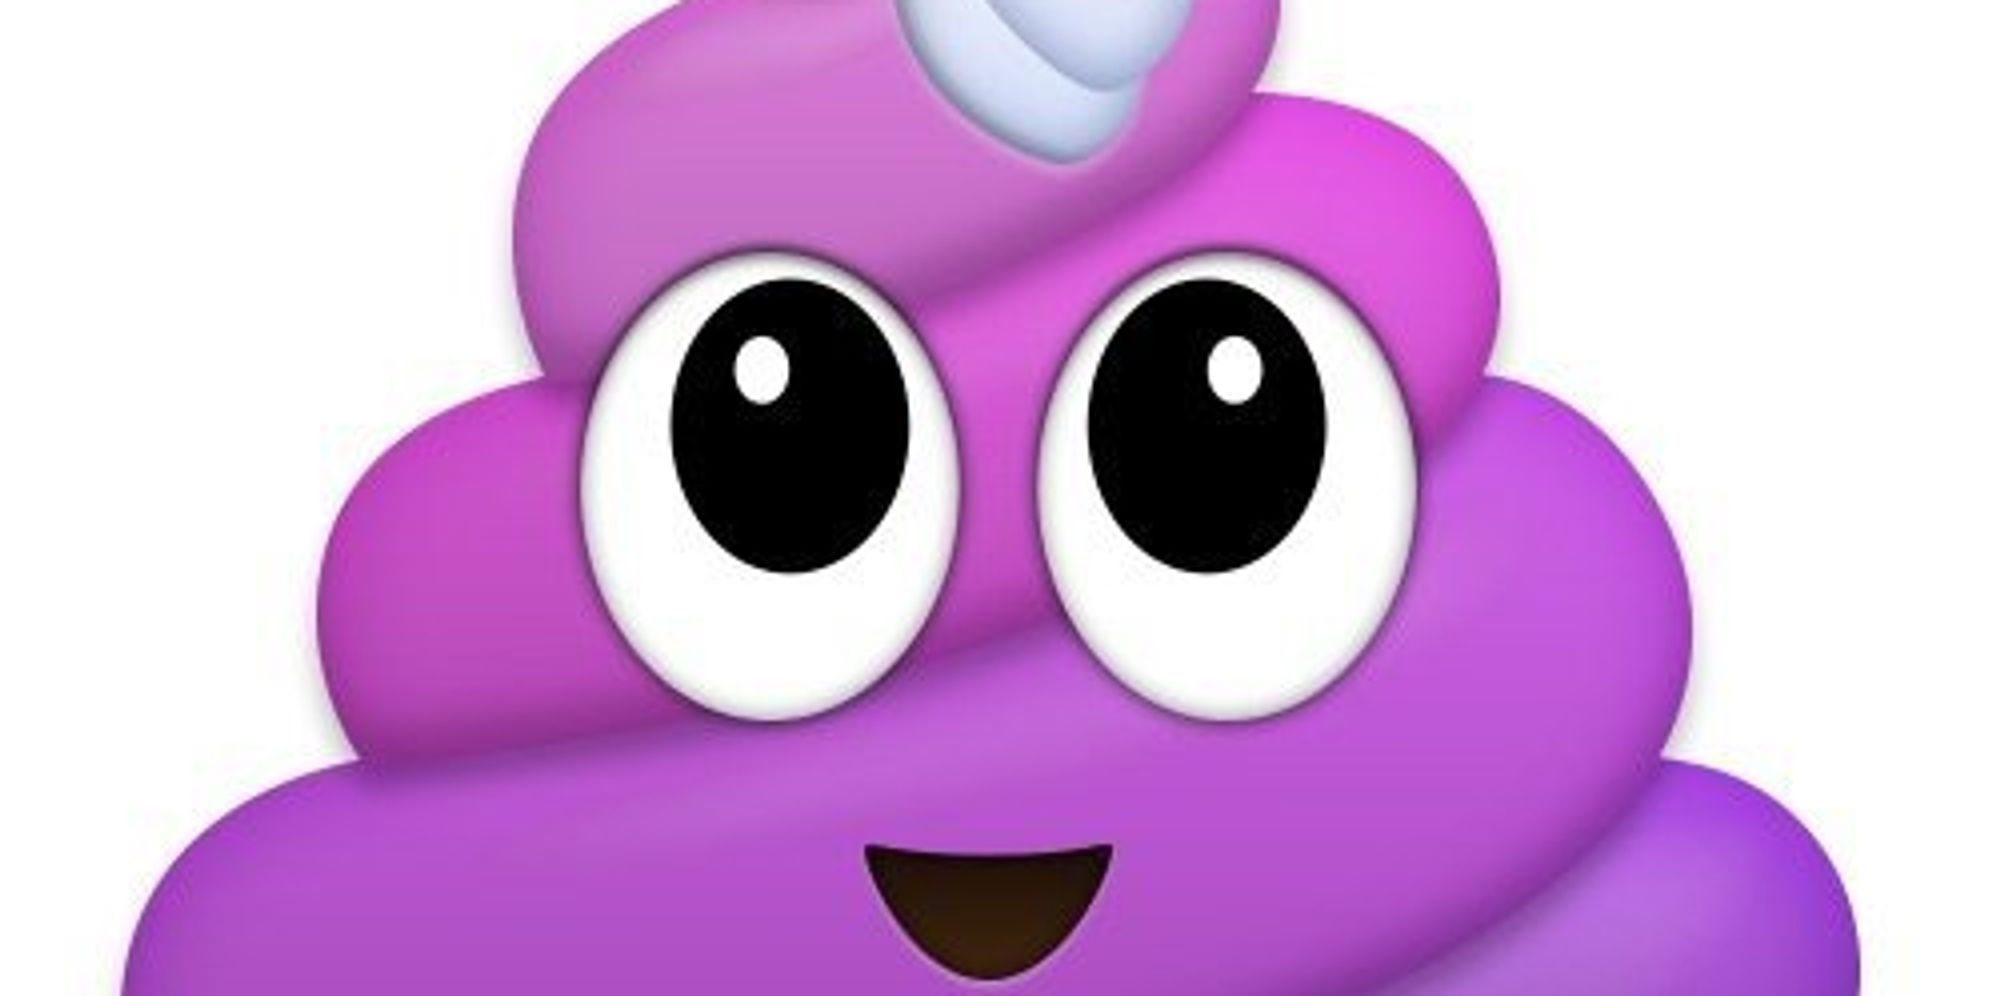 Poop Emojis Highlight Fact People Worldwide Lack Access To